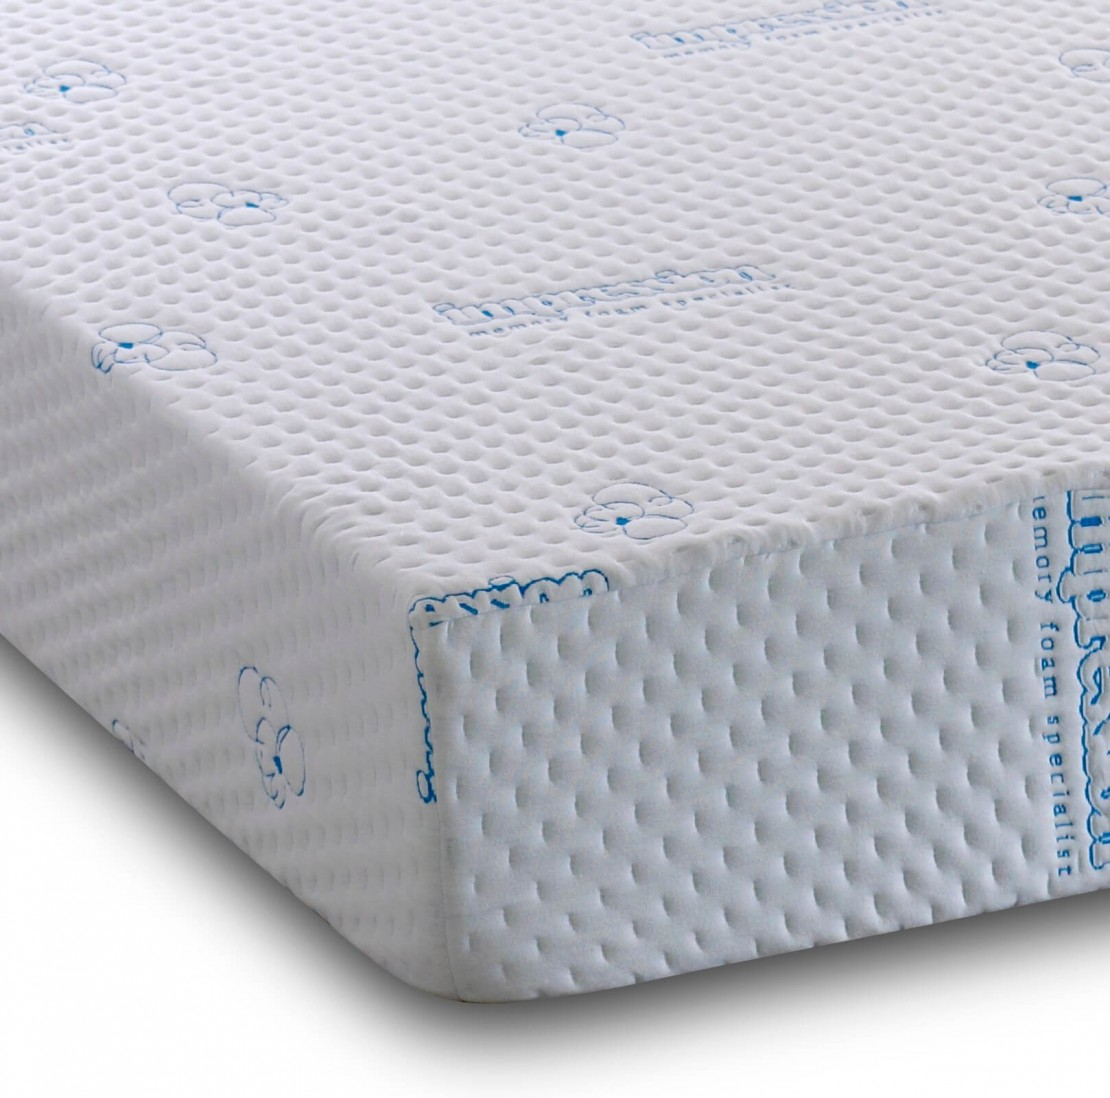 /_images/product-photos/visco-therapy-visco-2000-hd-memory-foam-regular-mattress-a.jpg